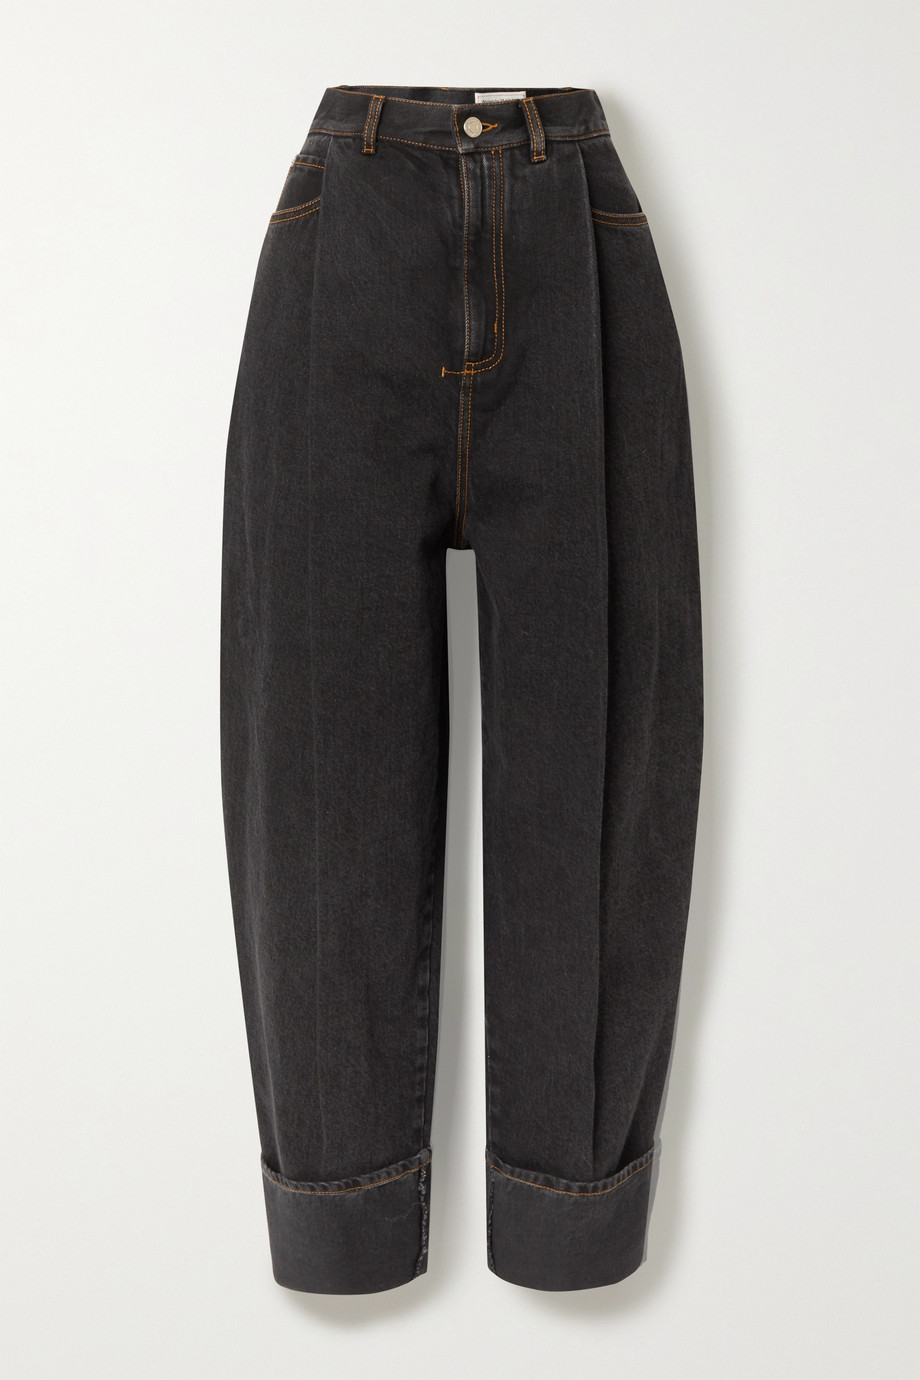 Alexander McQueen Pleated high-rise jeans